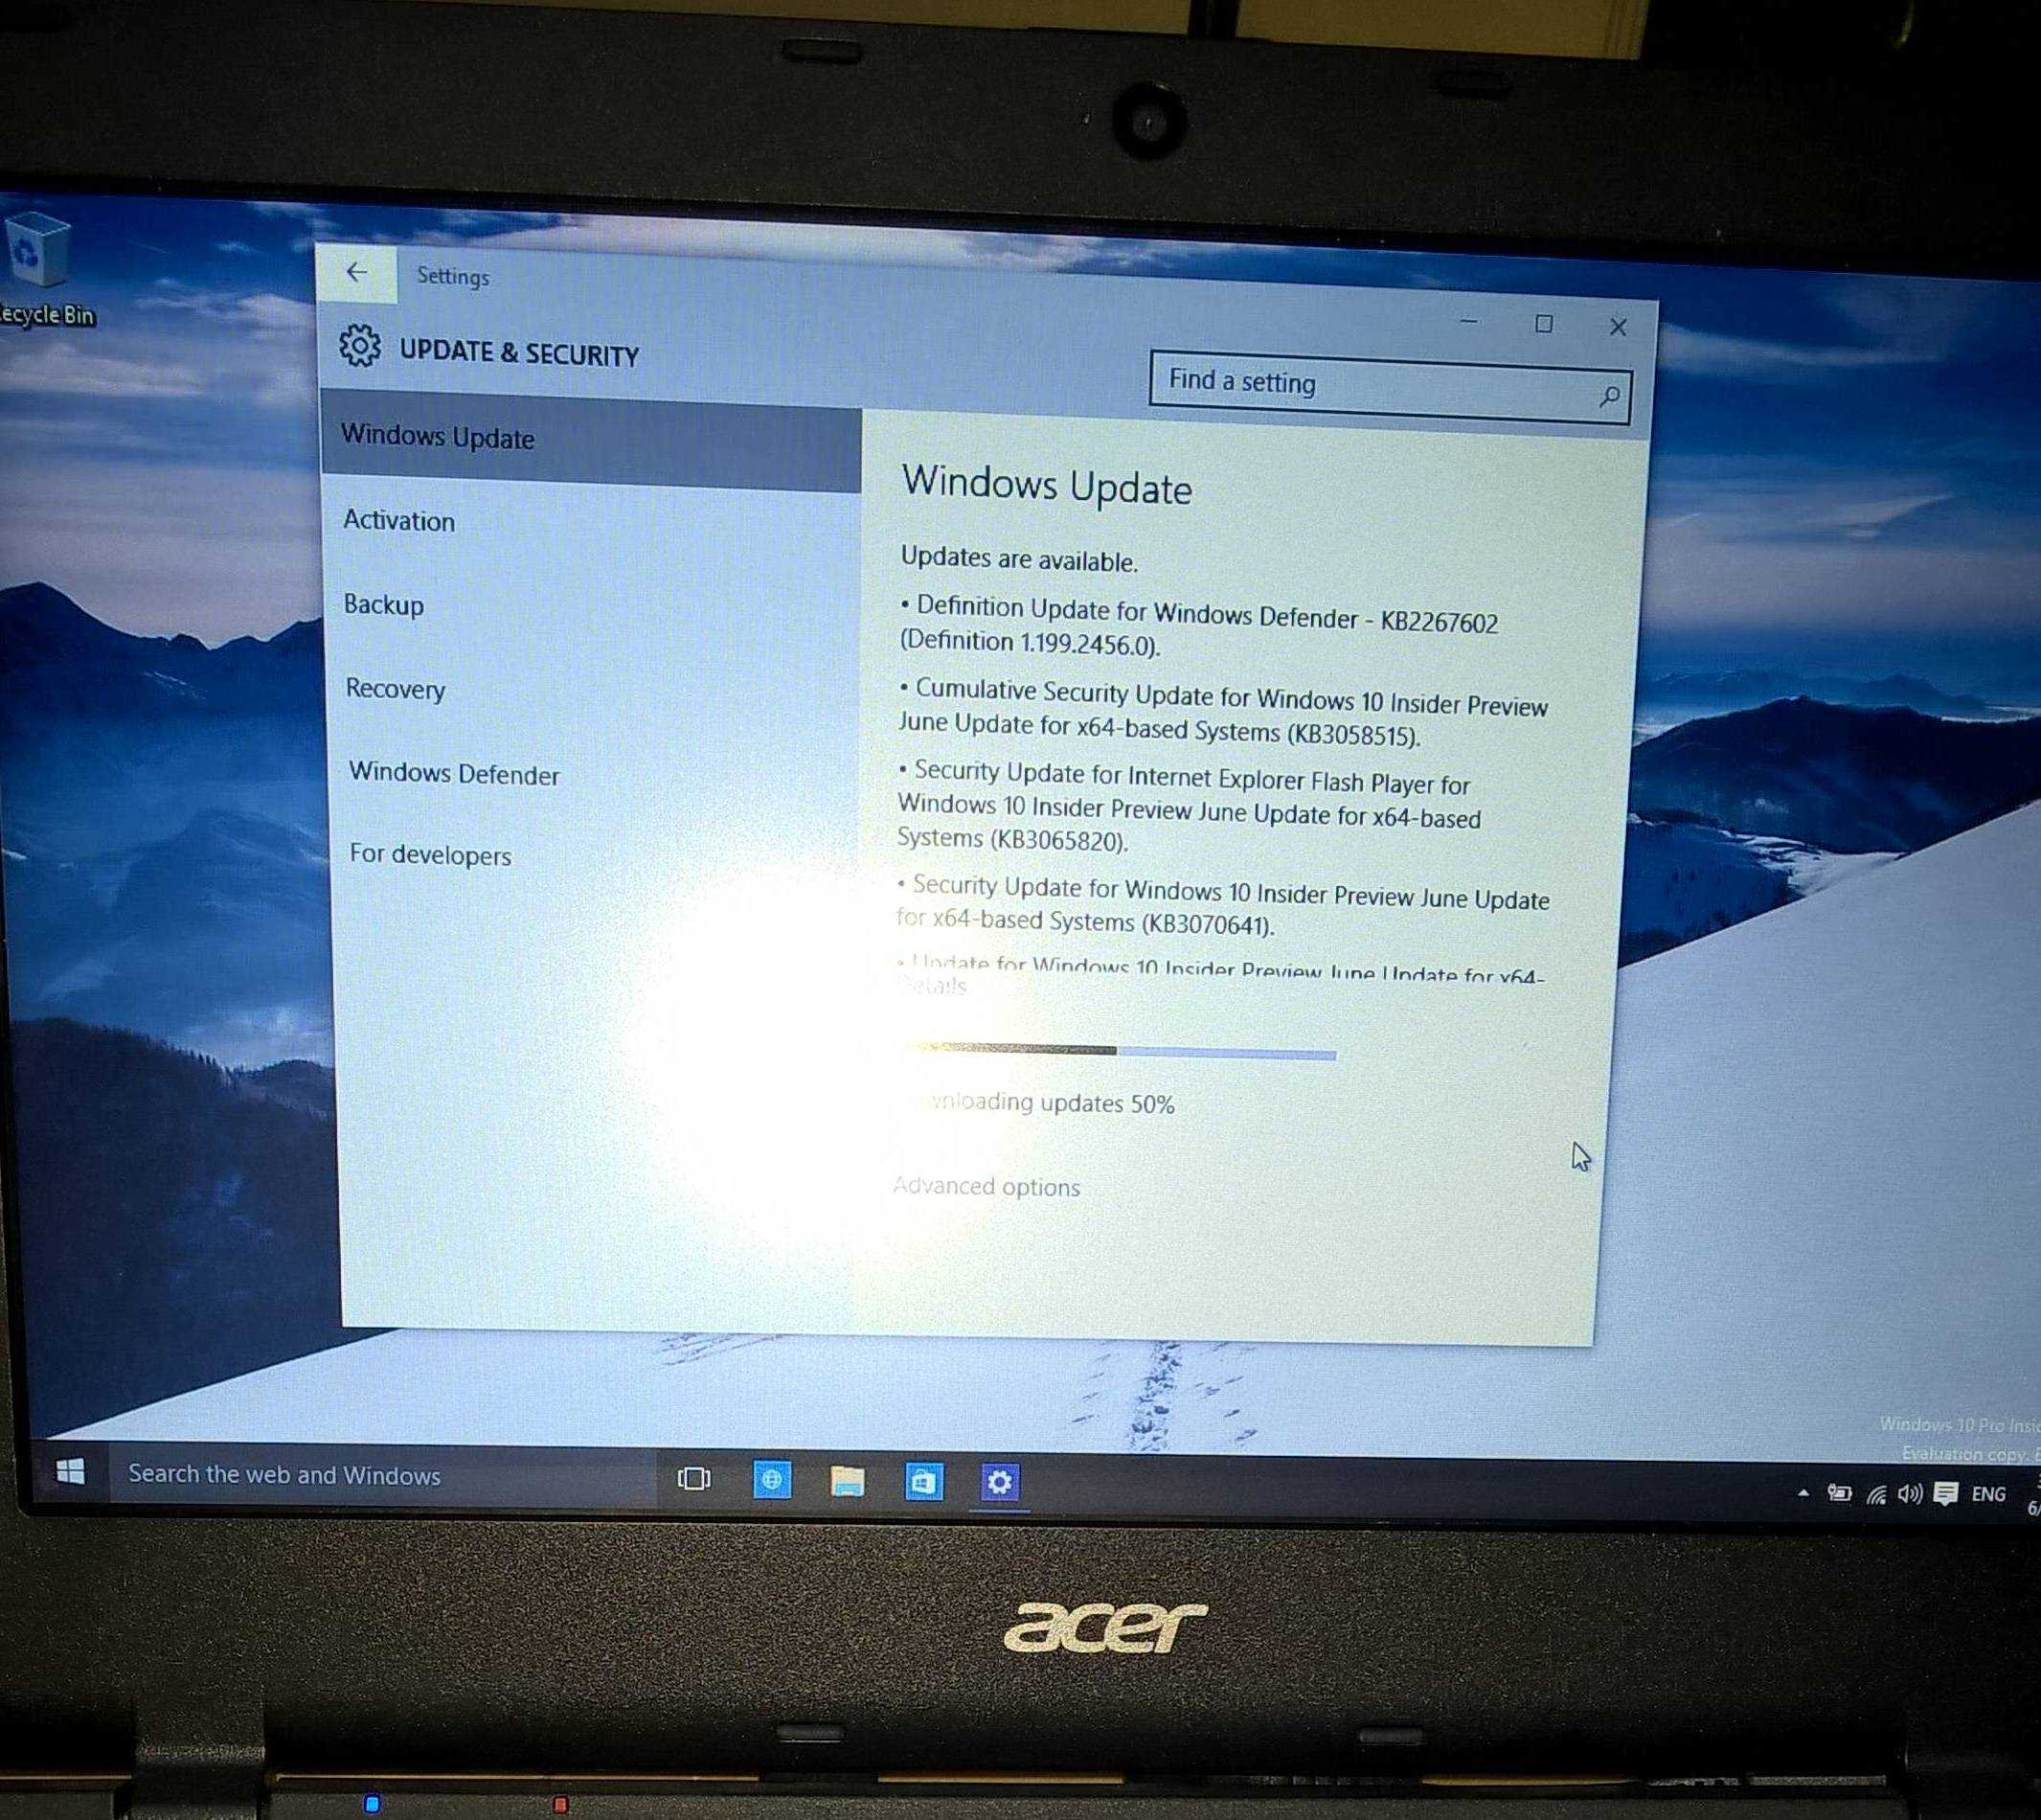 Acer Aspire E11 - Windows 10 drivers and touchpad updates